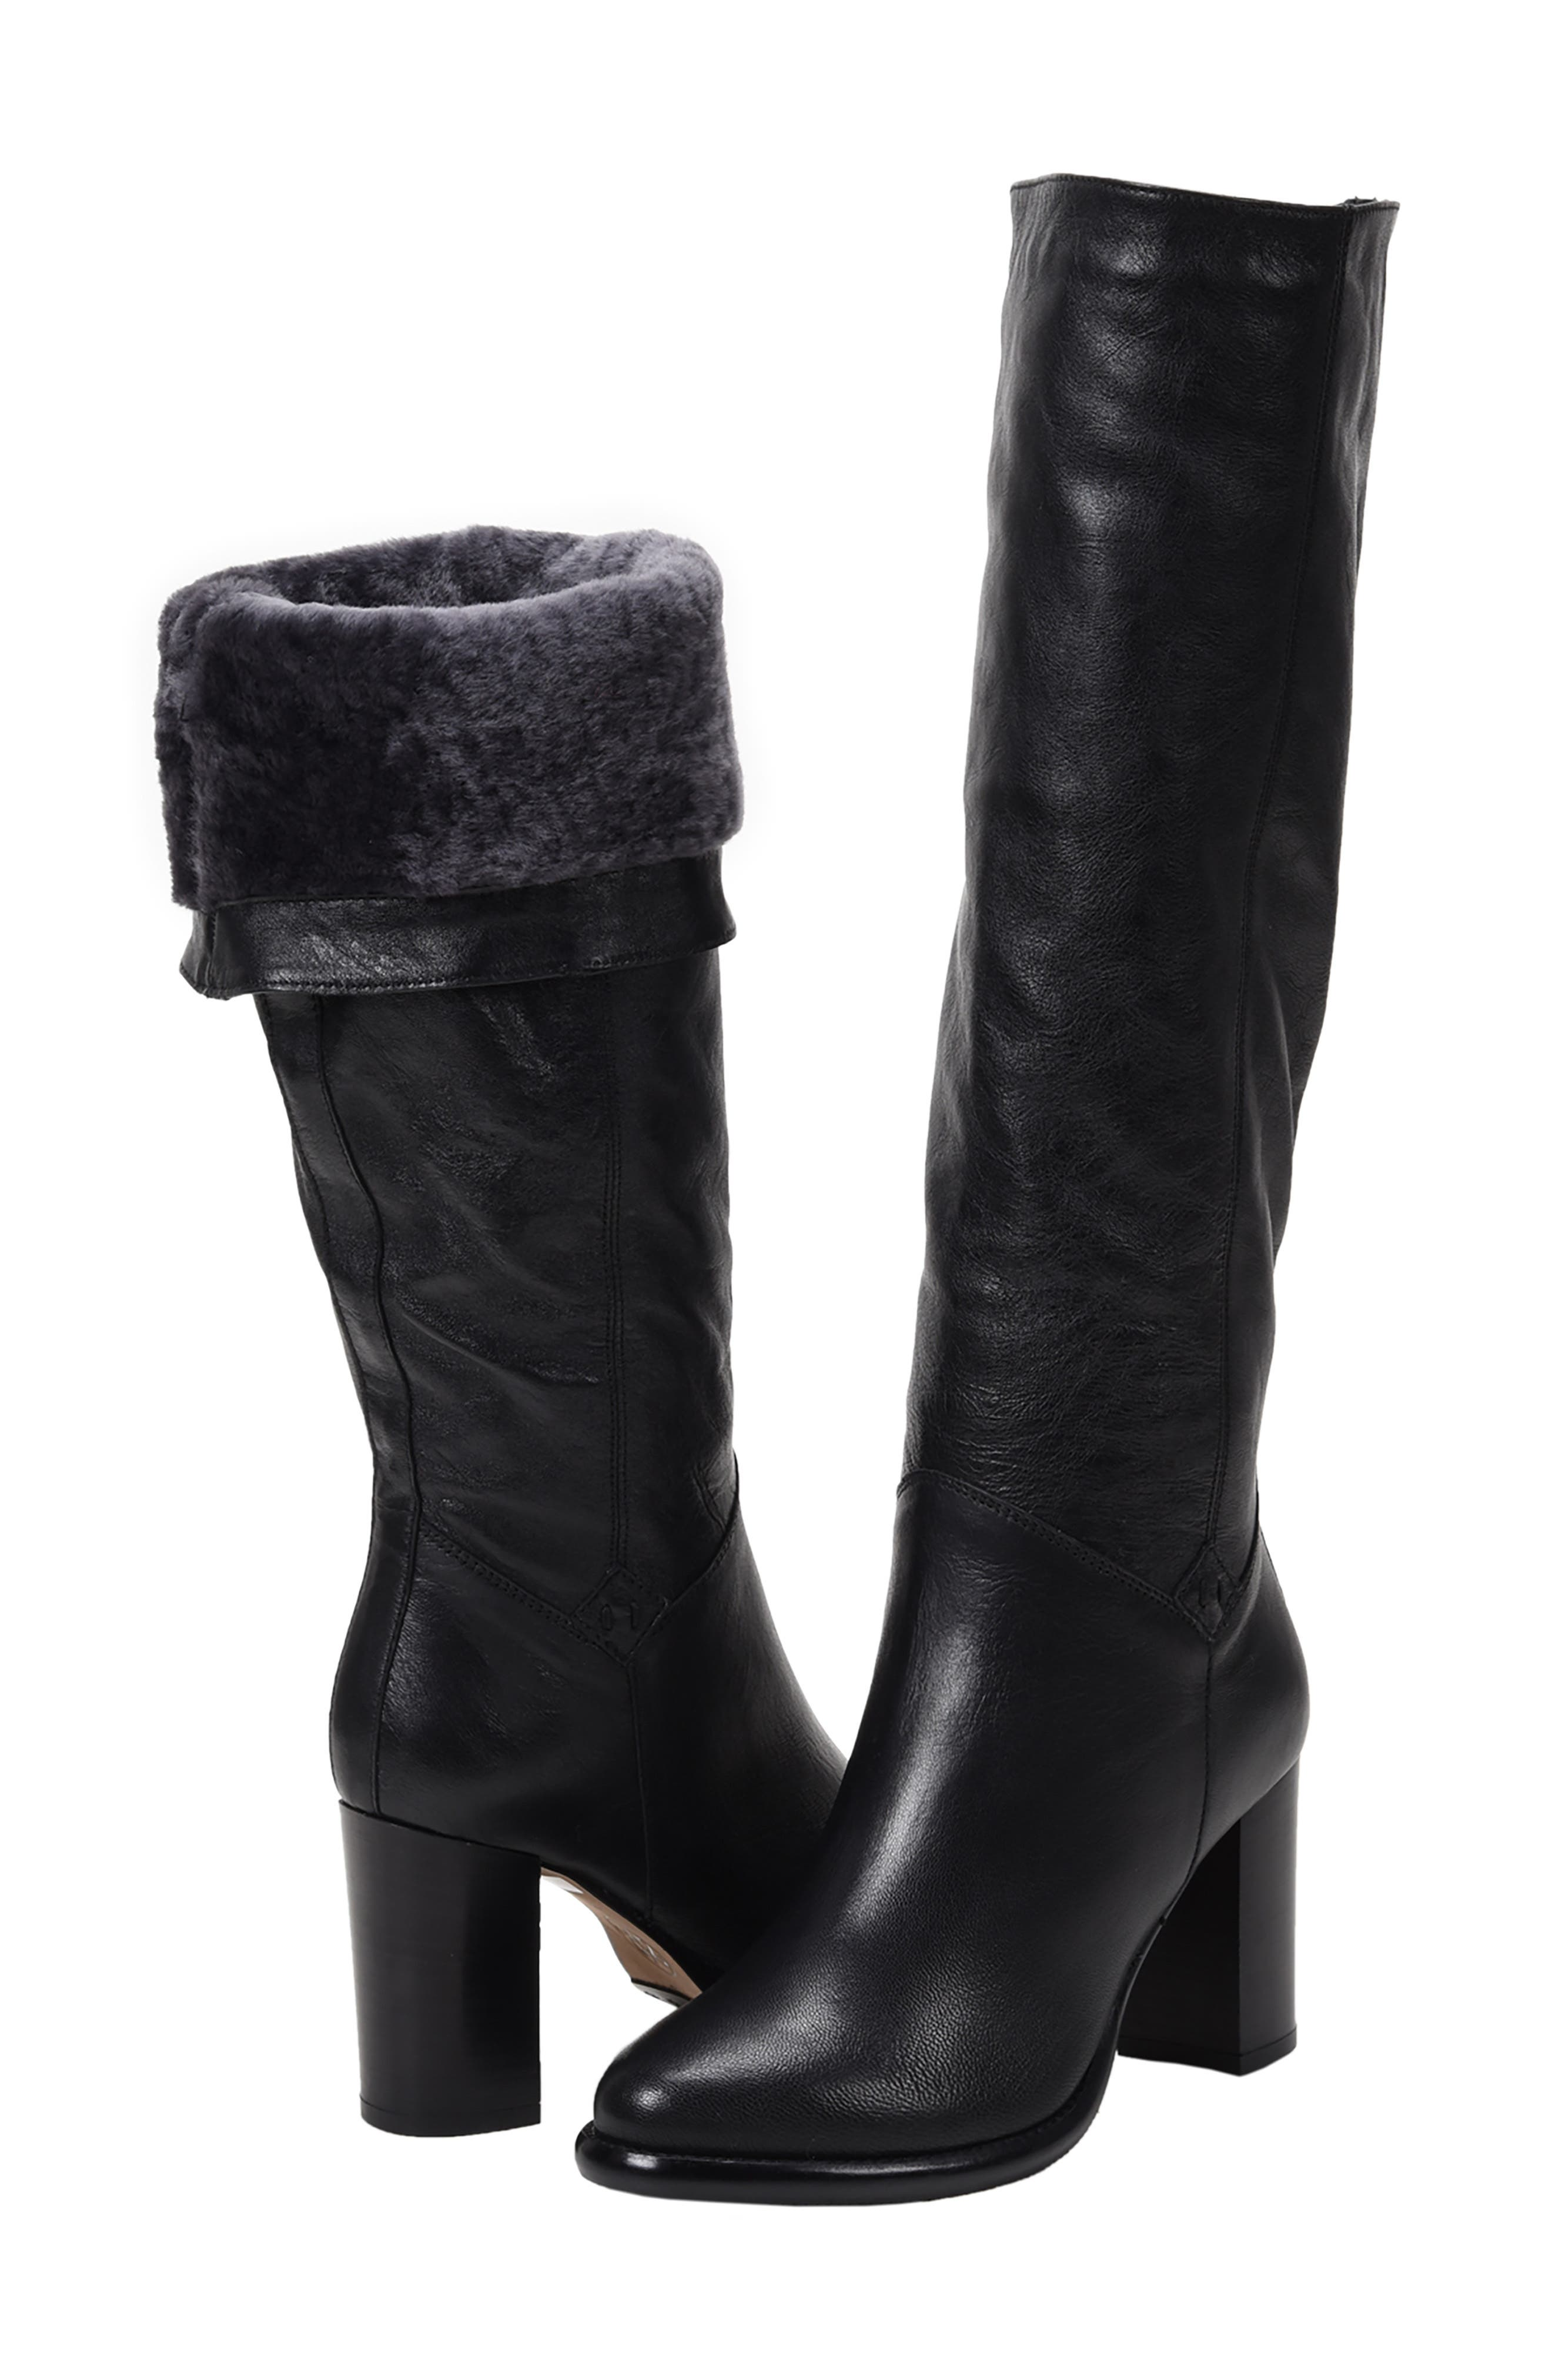 ROSS & SNOW, Michela SP Waterproof Genuine Shearling Lined Boot, Alternate thumbnail 7, color, BLACK METALLIC LEATHER